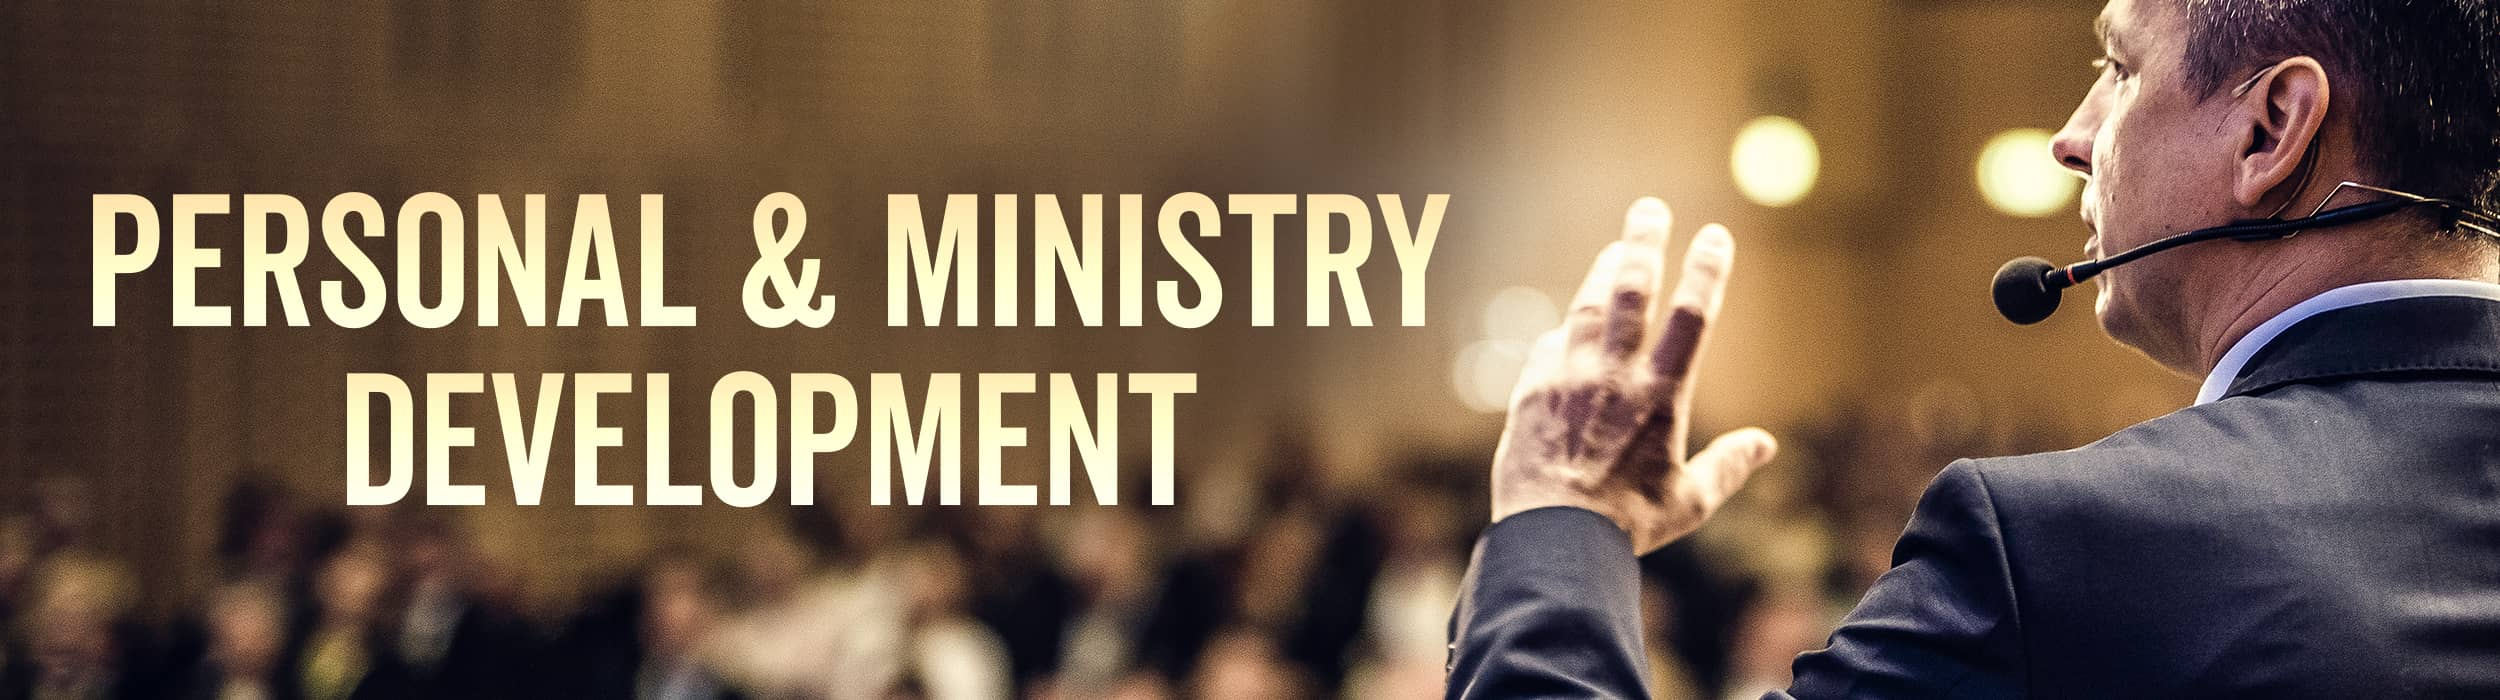 ministry online courses, ministry development online courses, church development online courses